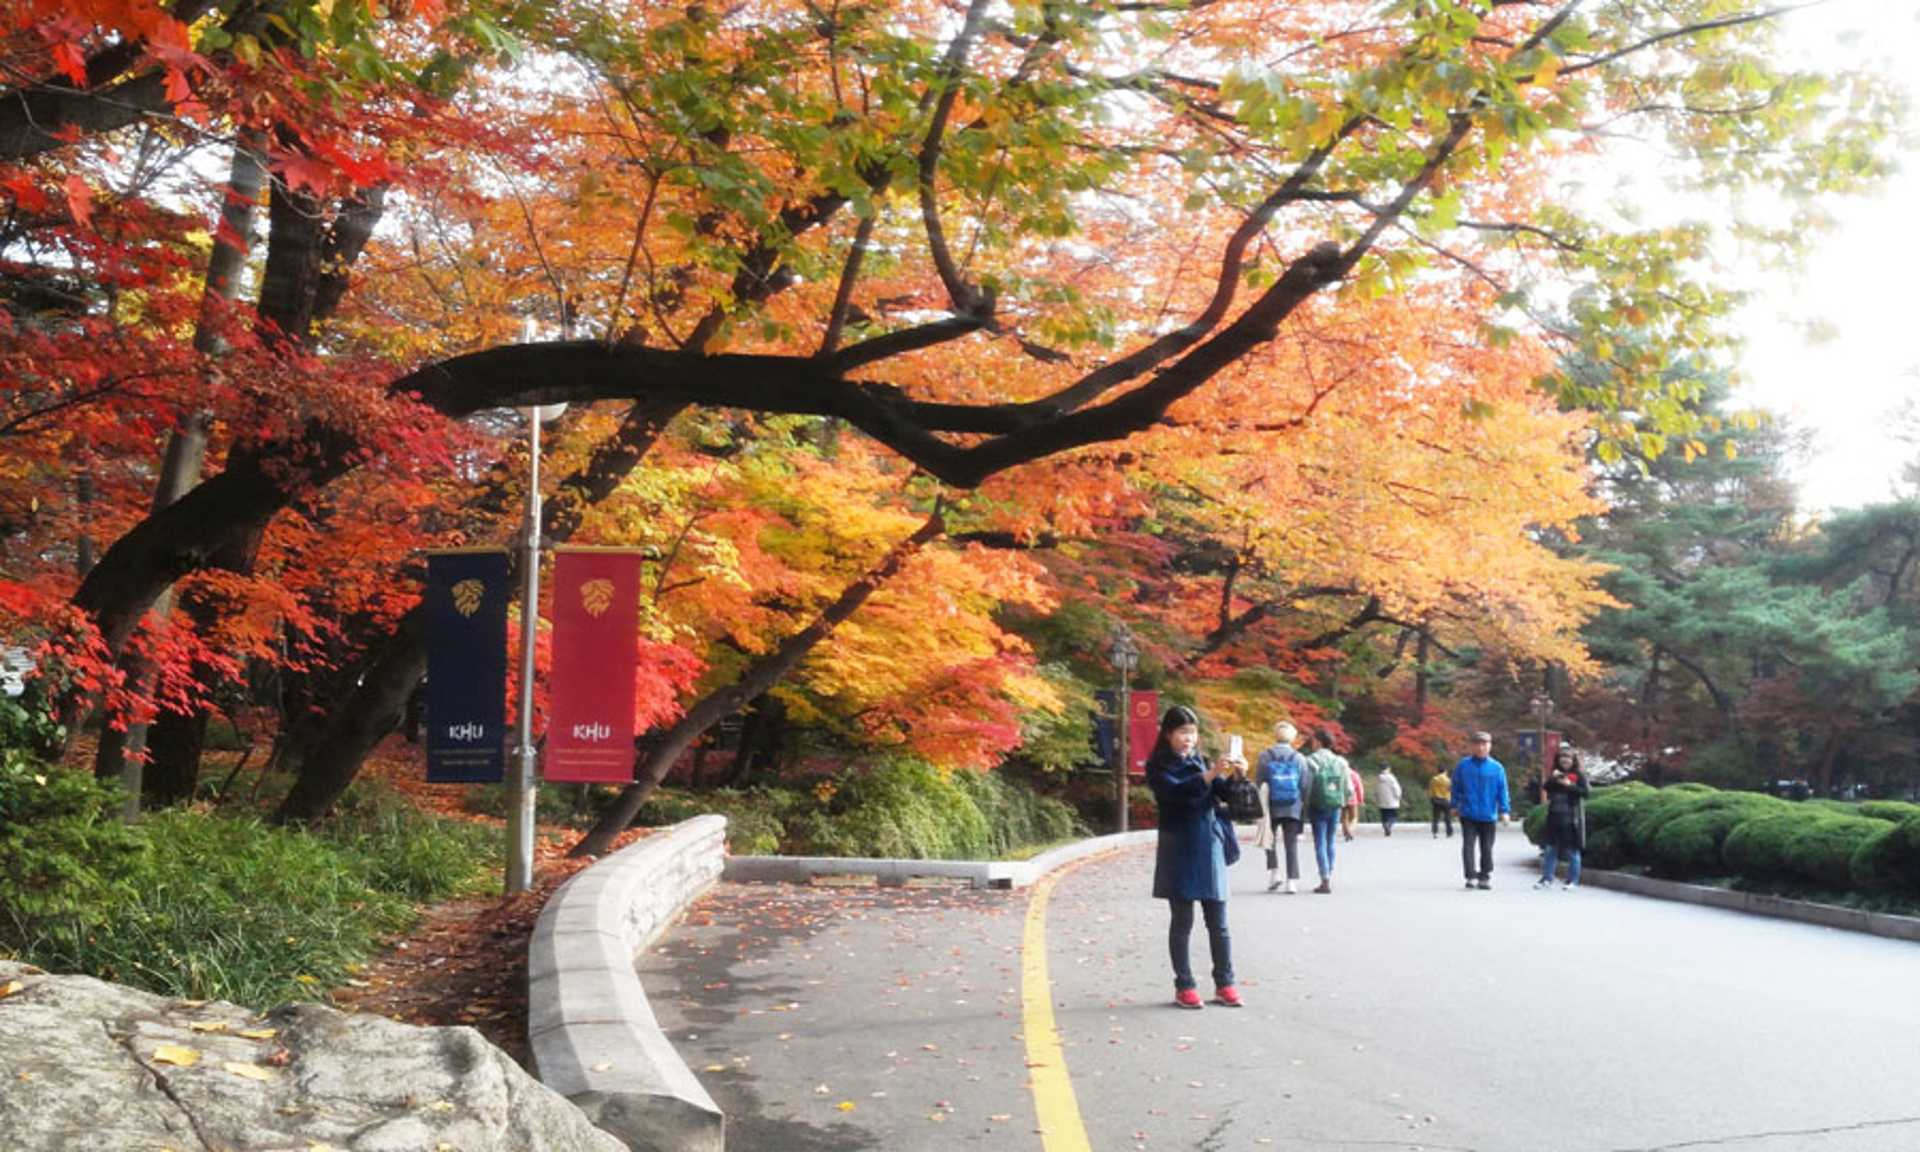 Autumn in KHU has its own charm!